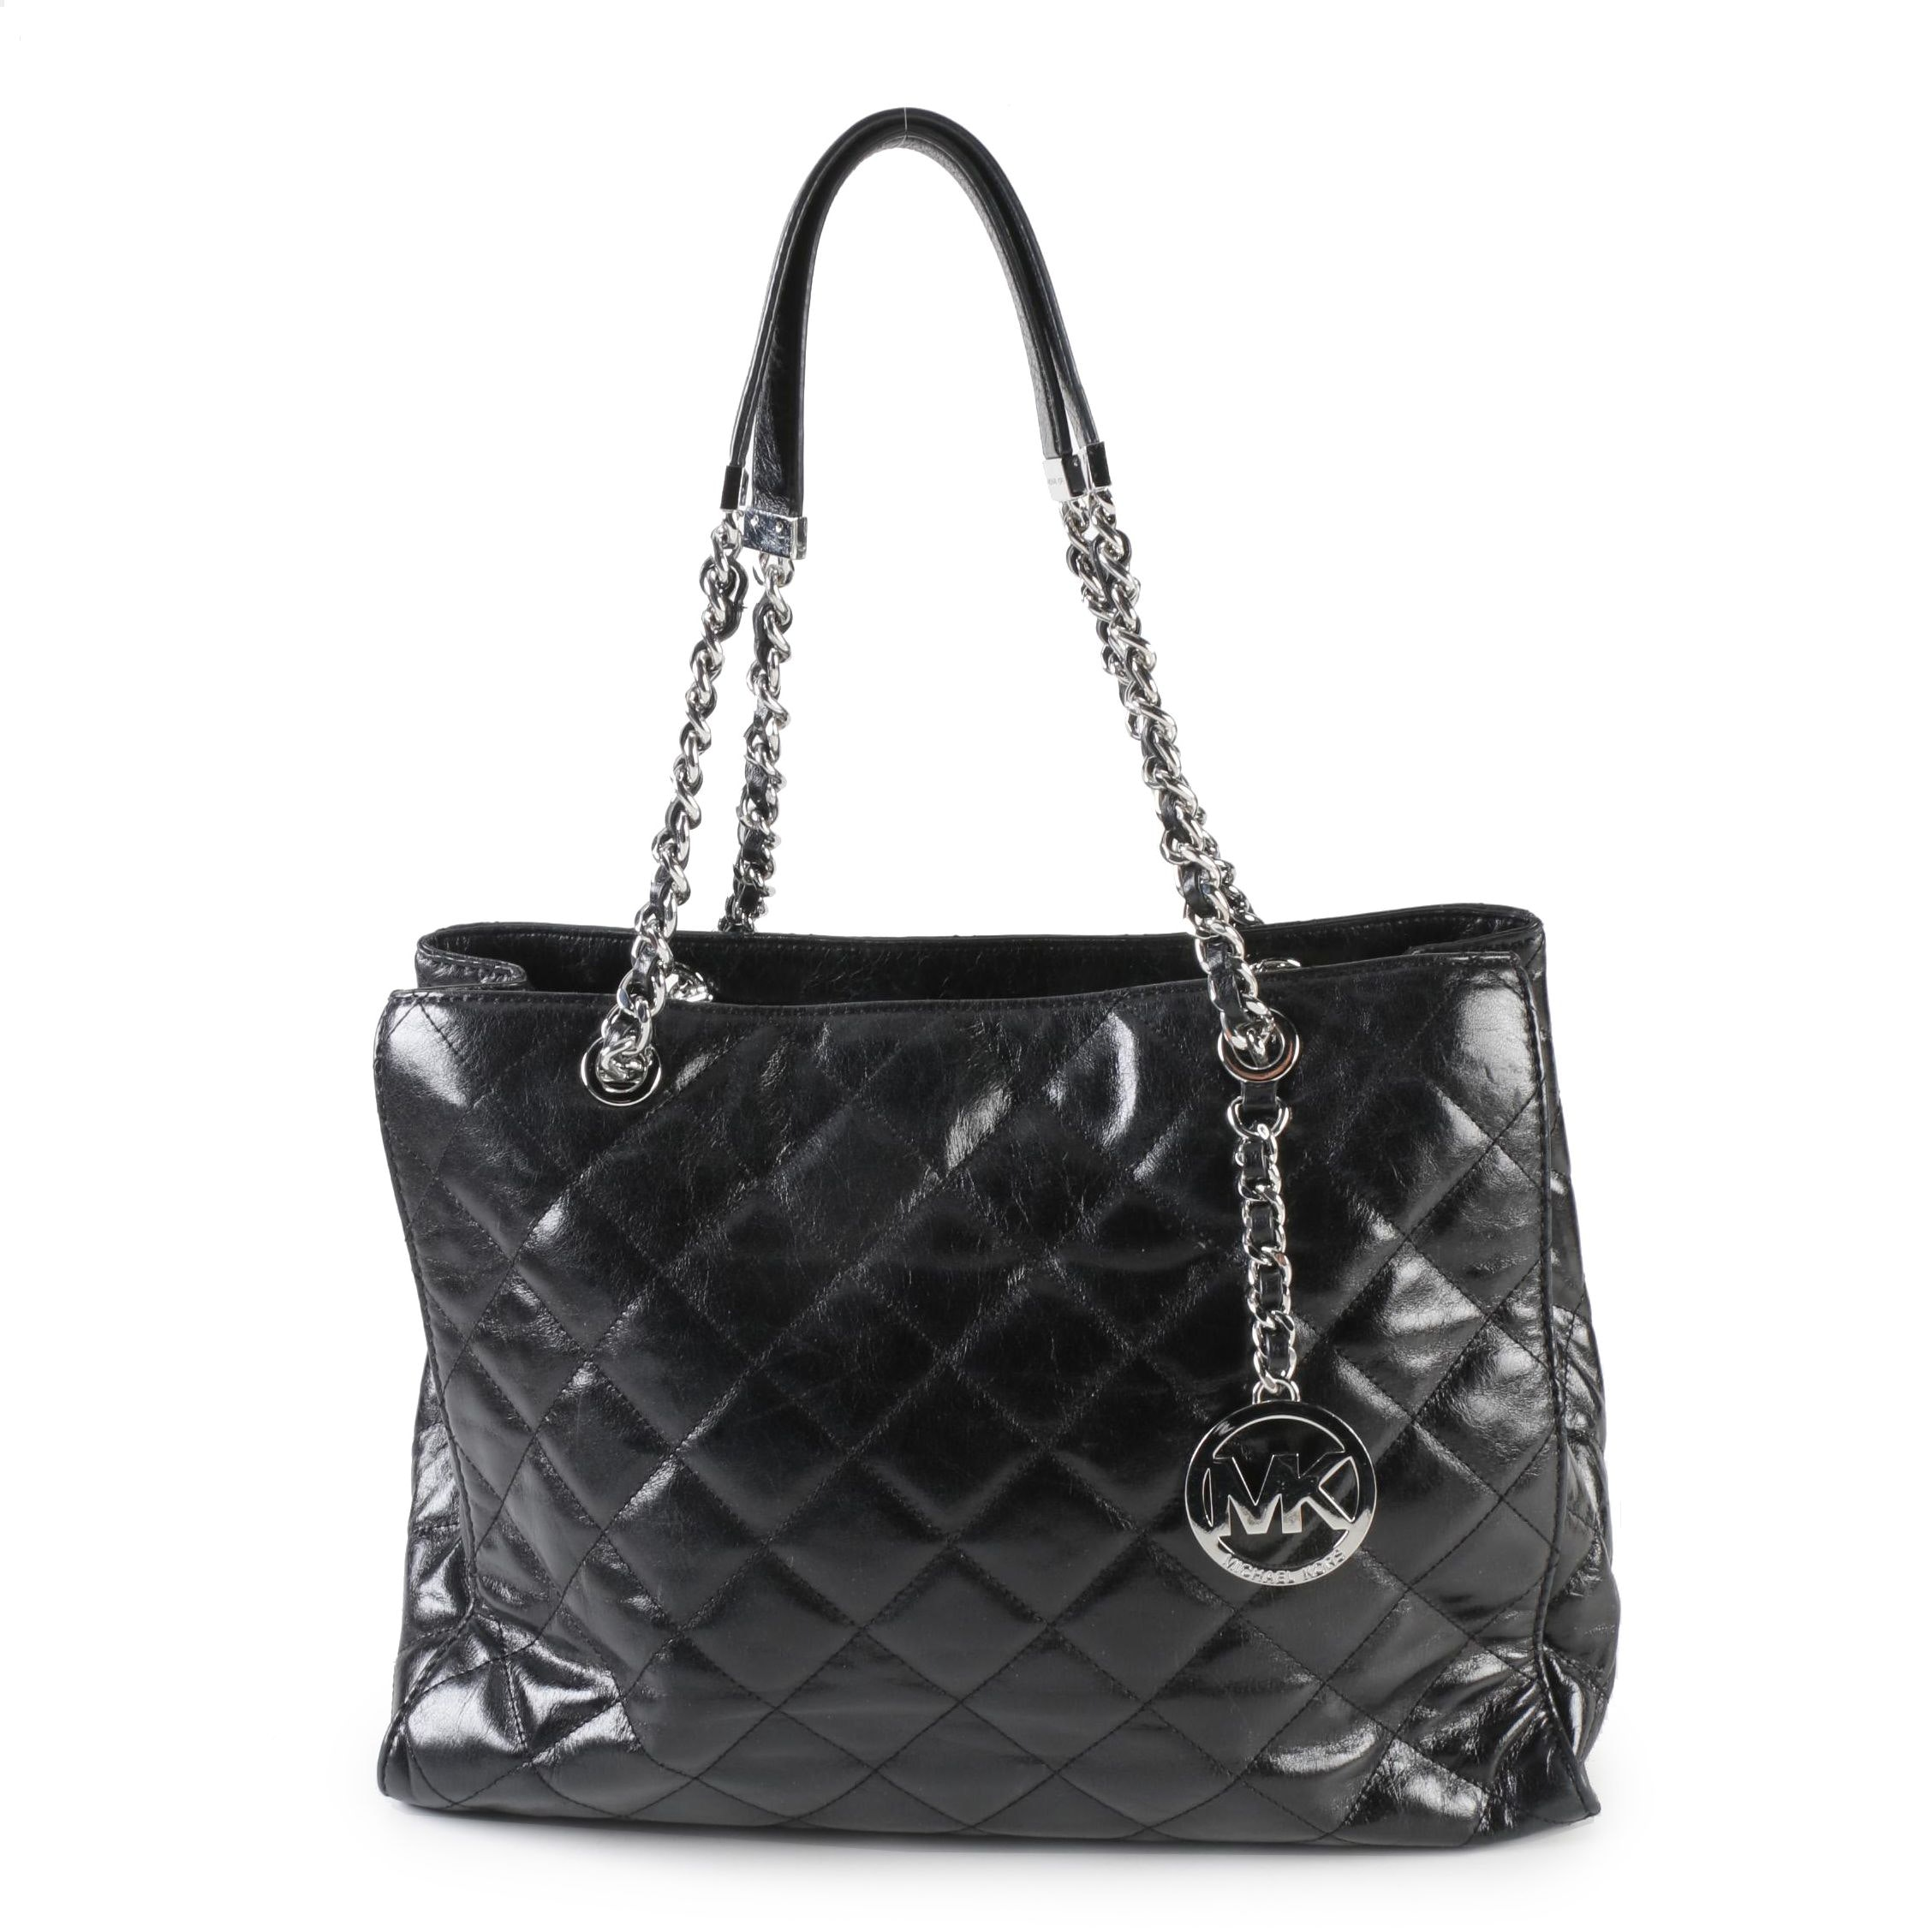 MICHAEL Michael Kors Black Quilted Leather Shoulder Bag